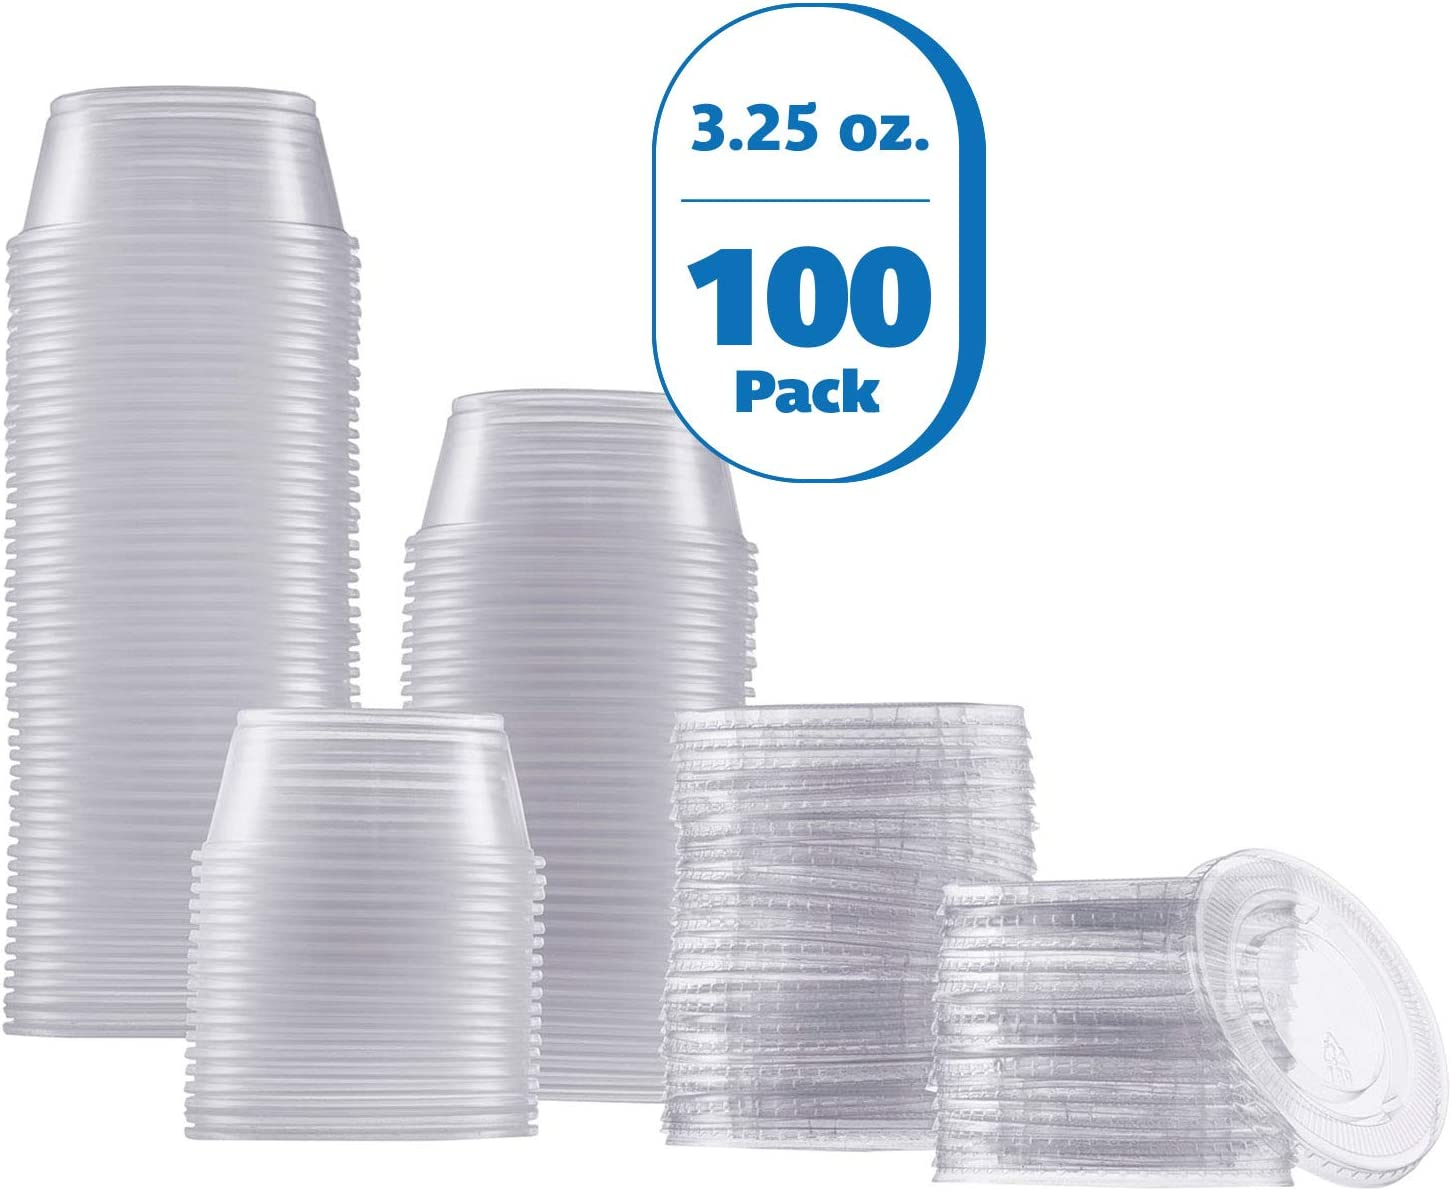 Zeml Portion Cups with Lids (3.25 Ounces, 100 Pack) | Disposable Plastic Cups for Meal Prep, Portion Control, Salad Dressing, Jello Shots, Slime & Medicine | Premium Small Plastic Condiment Container